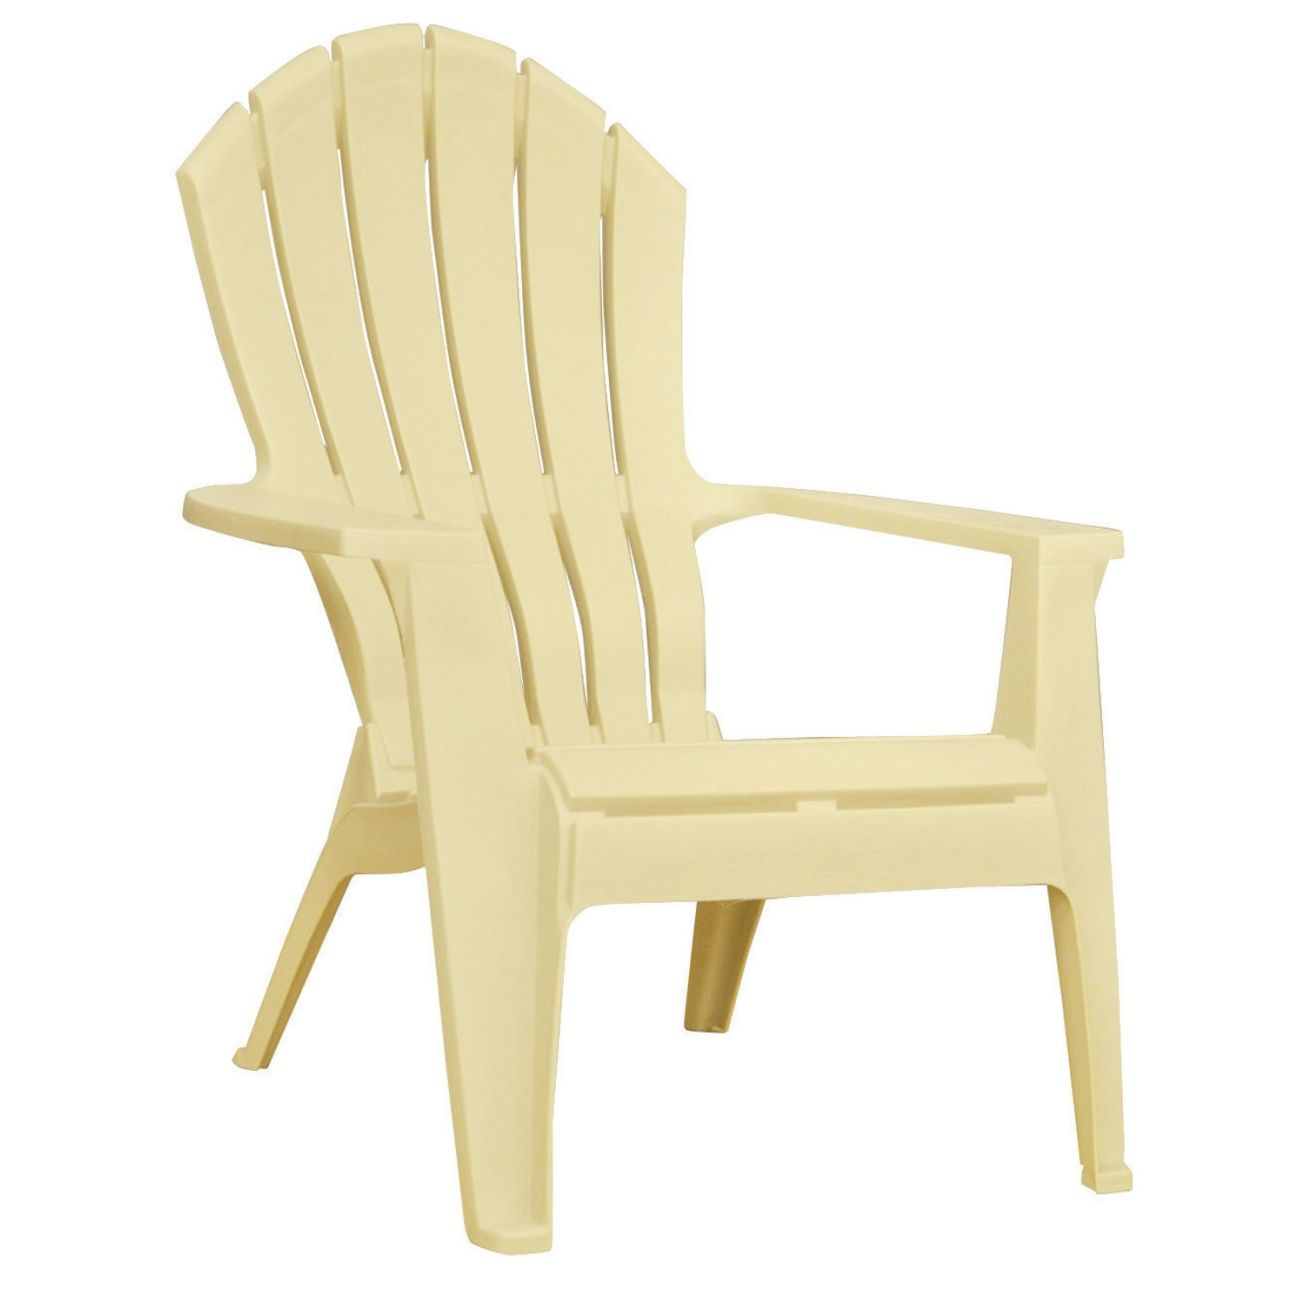 Get The Best Plastic Adirondack Chairs Plastic Adirondack Chairs Adams Realcomfort Adirondack Chair 1 Plastic Patio Chairs Patio Chairs Outdoor Rocking Chairs